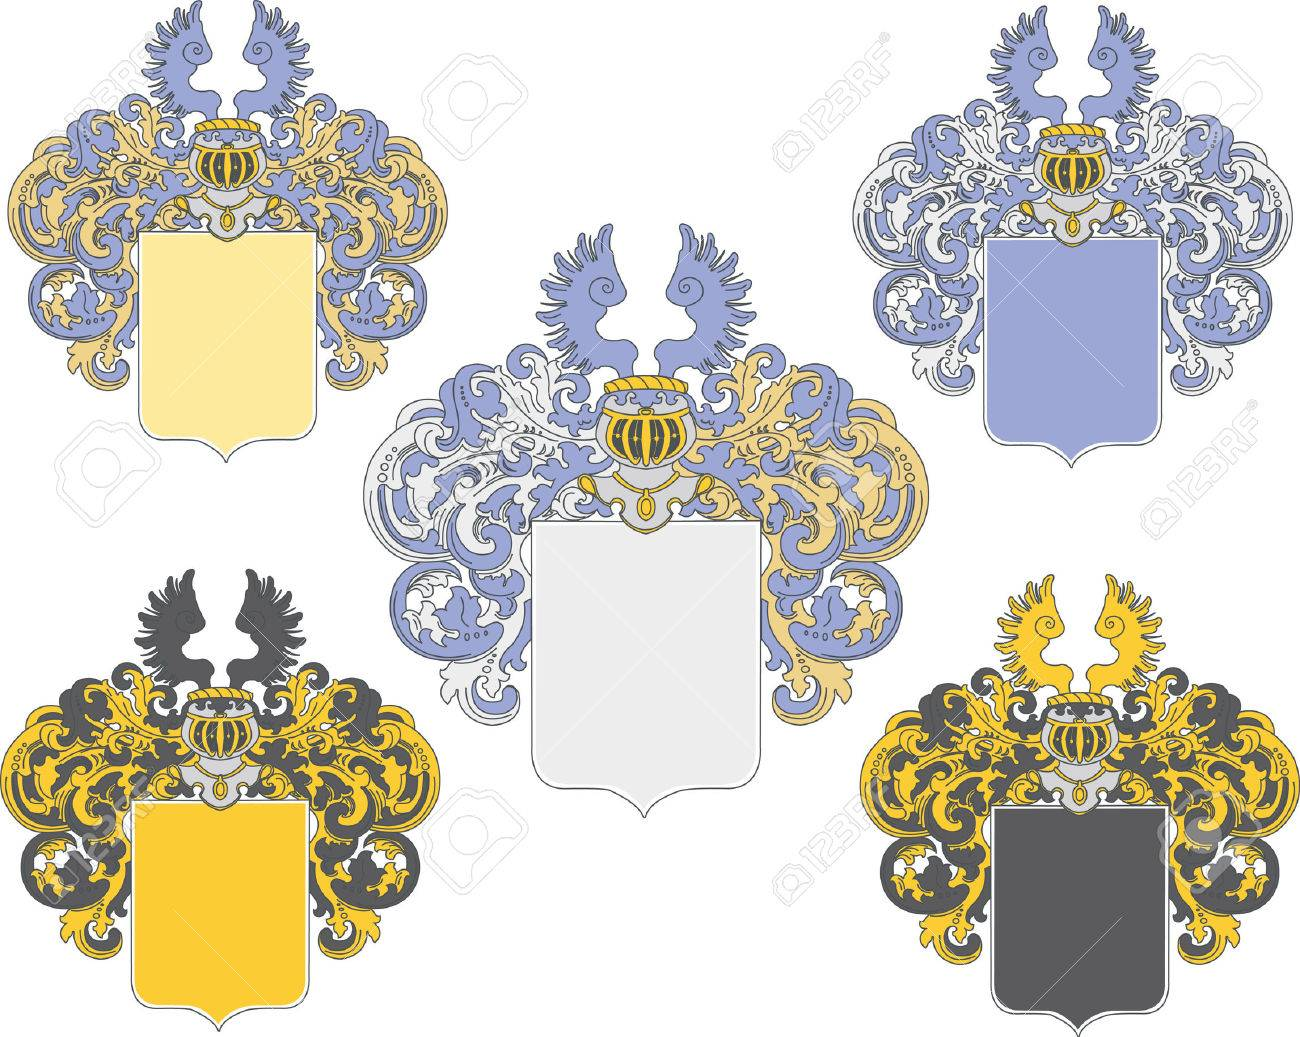 coat of arms in various colors schemes Stock Vector - 6891922